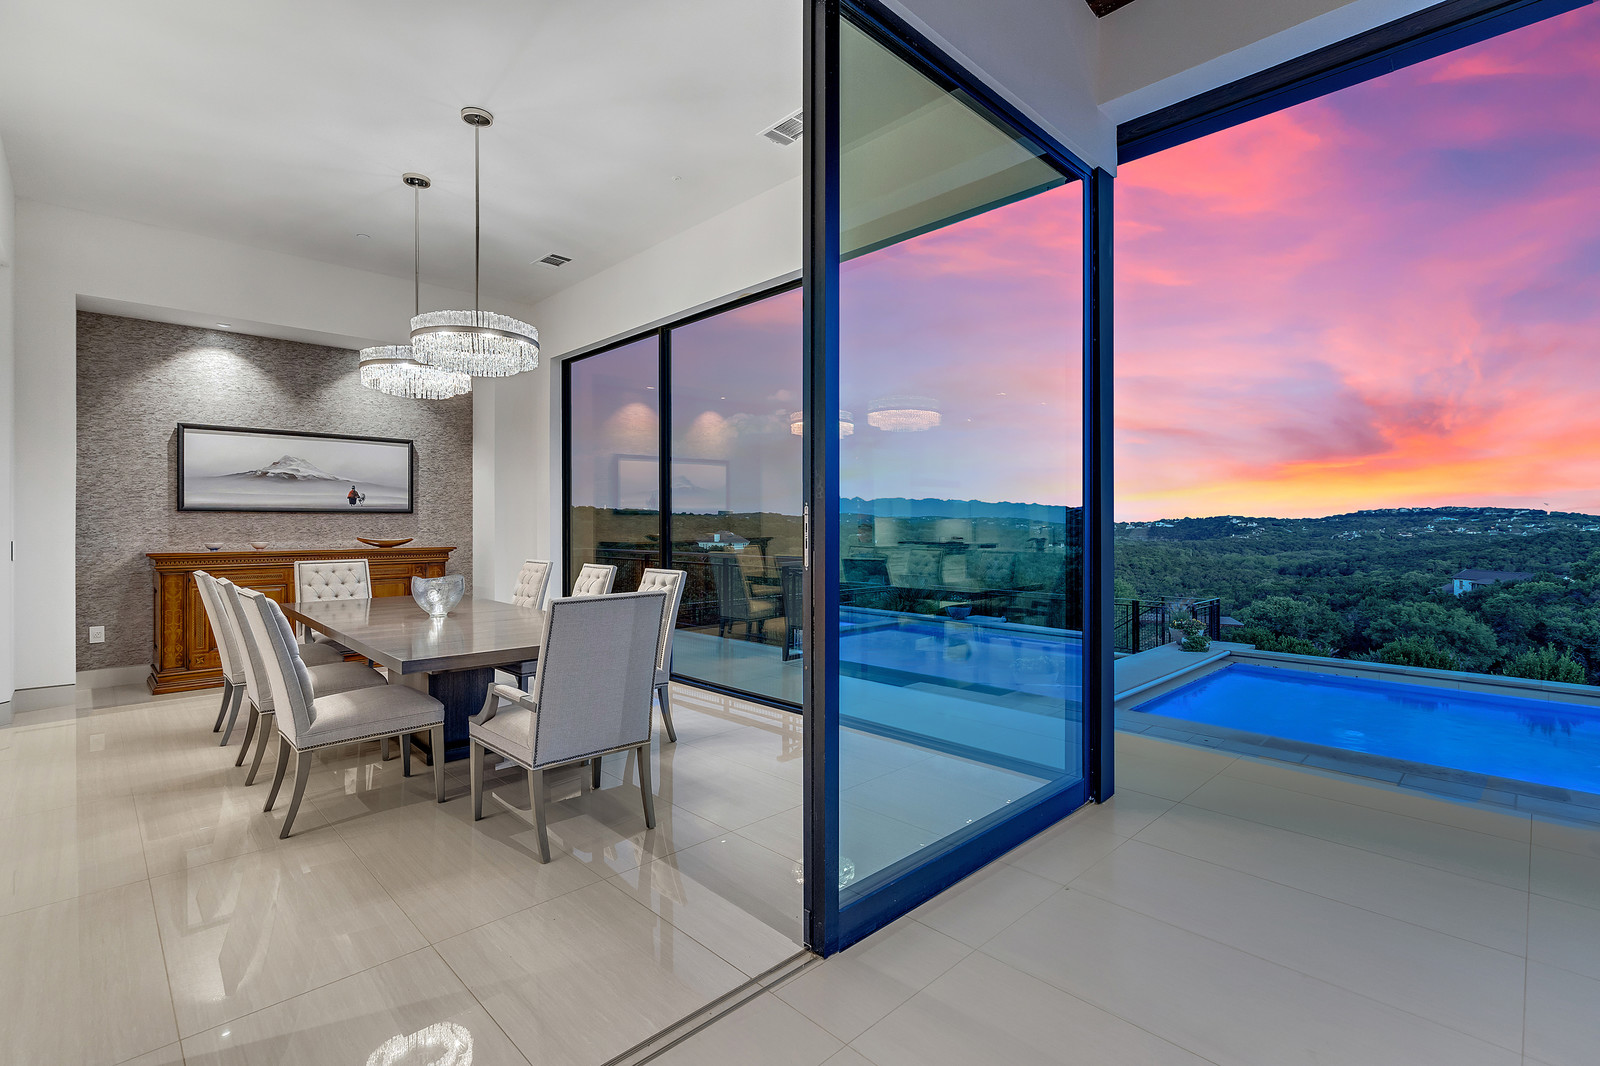 True indoor/outdoor living to fully capture views